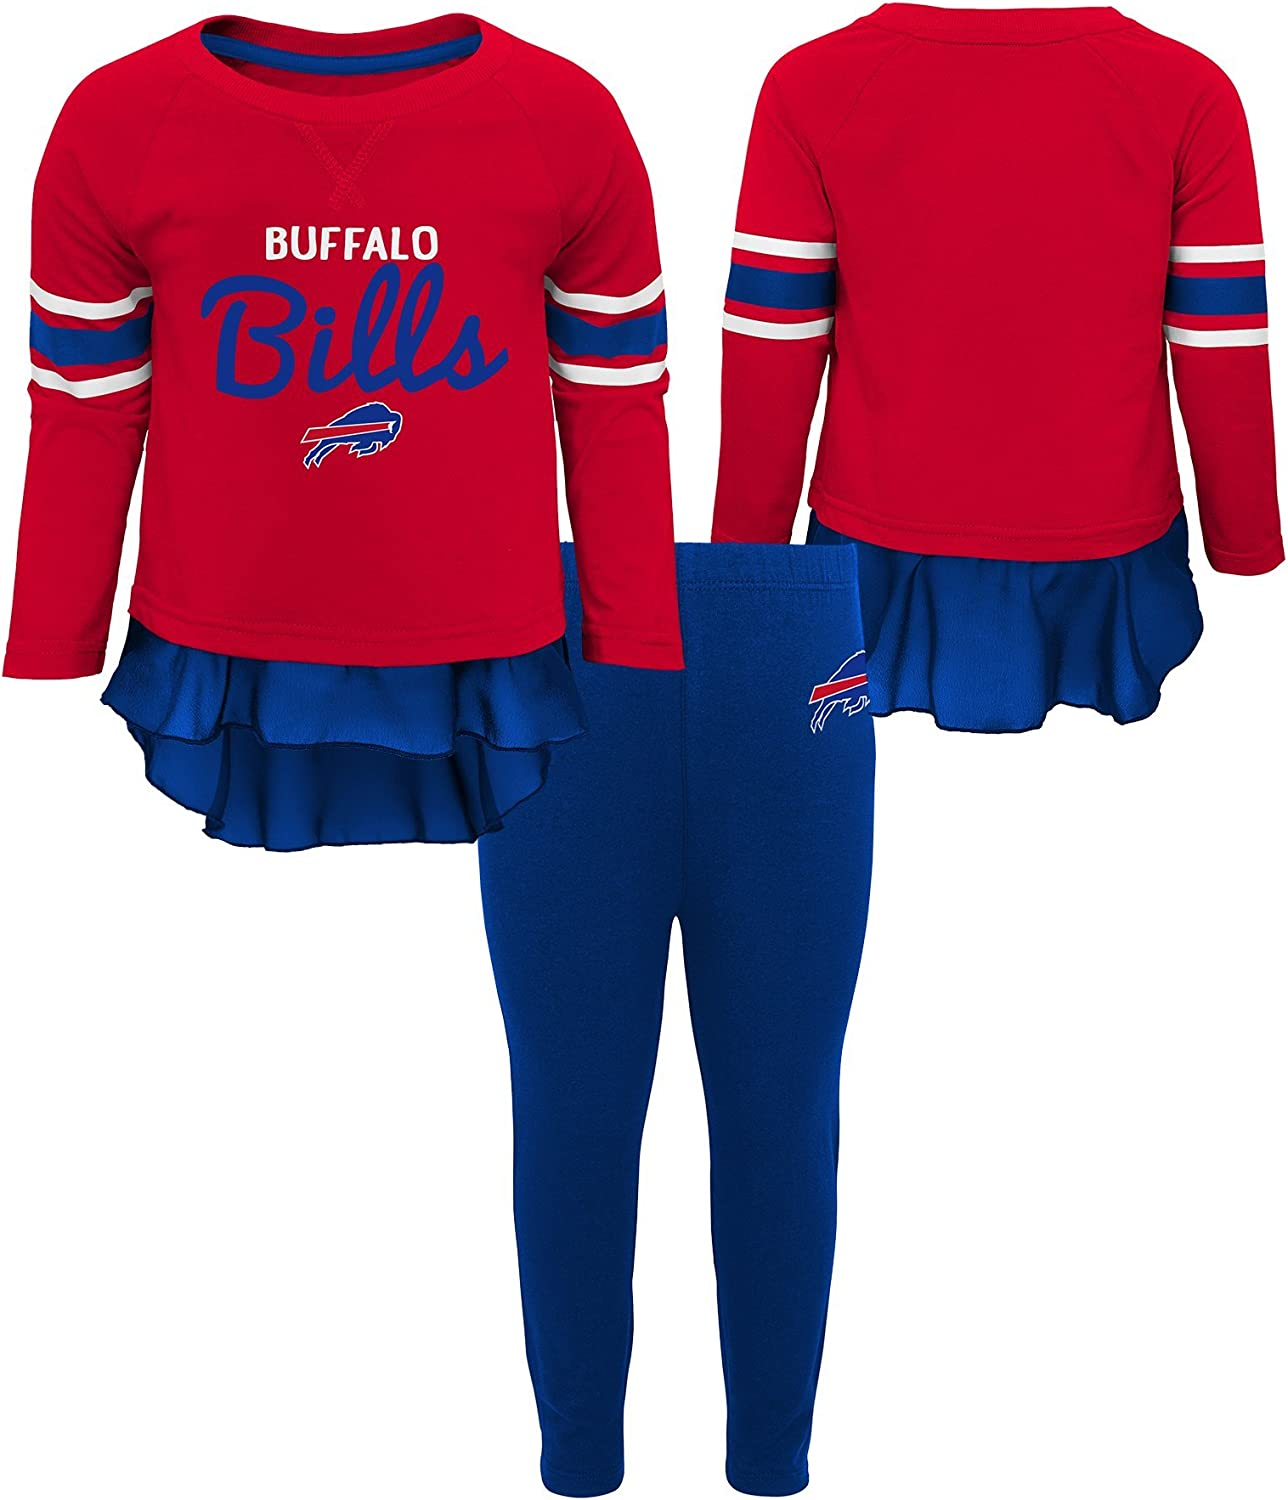 NFL by Outerstuff NFL Baby-Girls Mini Formation Long Sleeve Top /& Legging Set